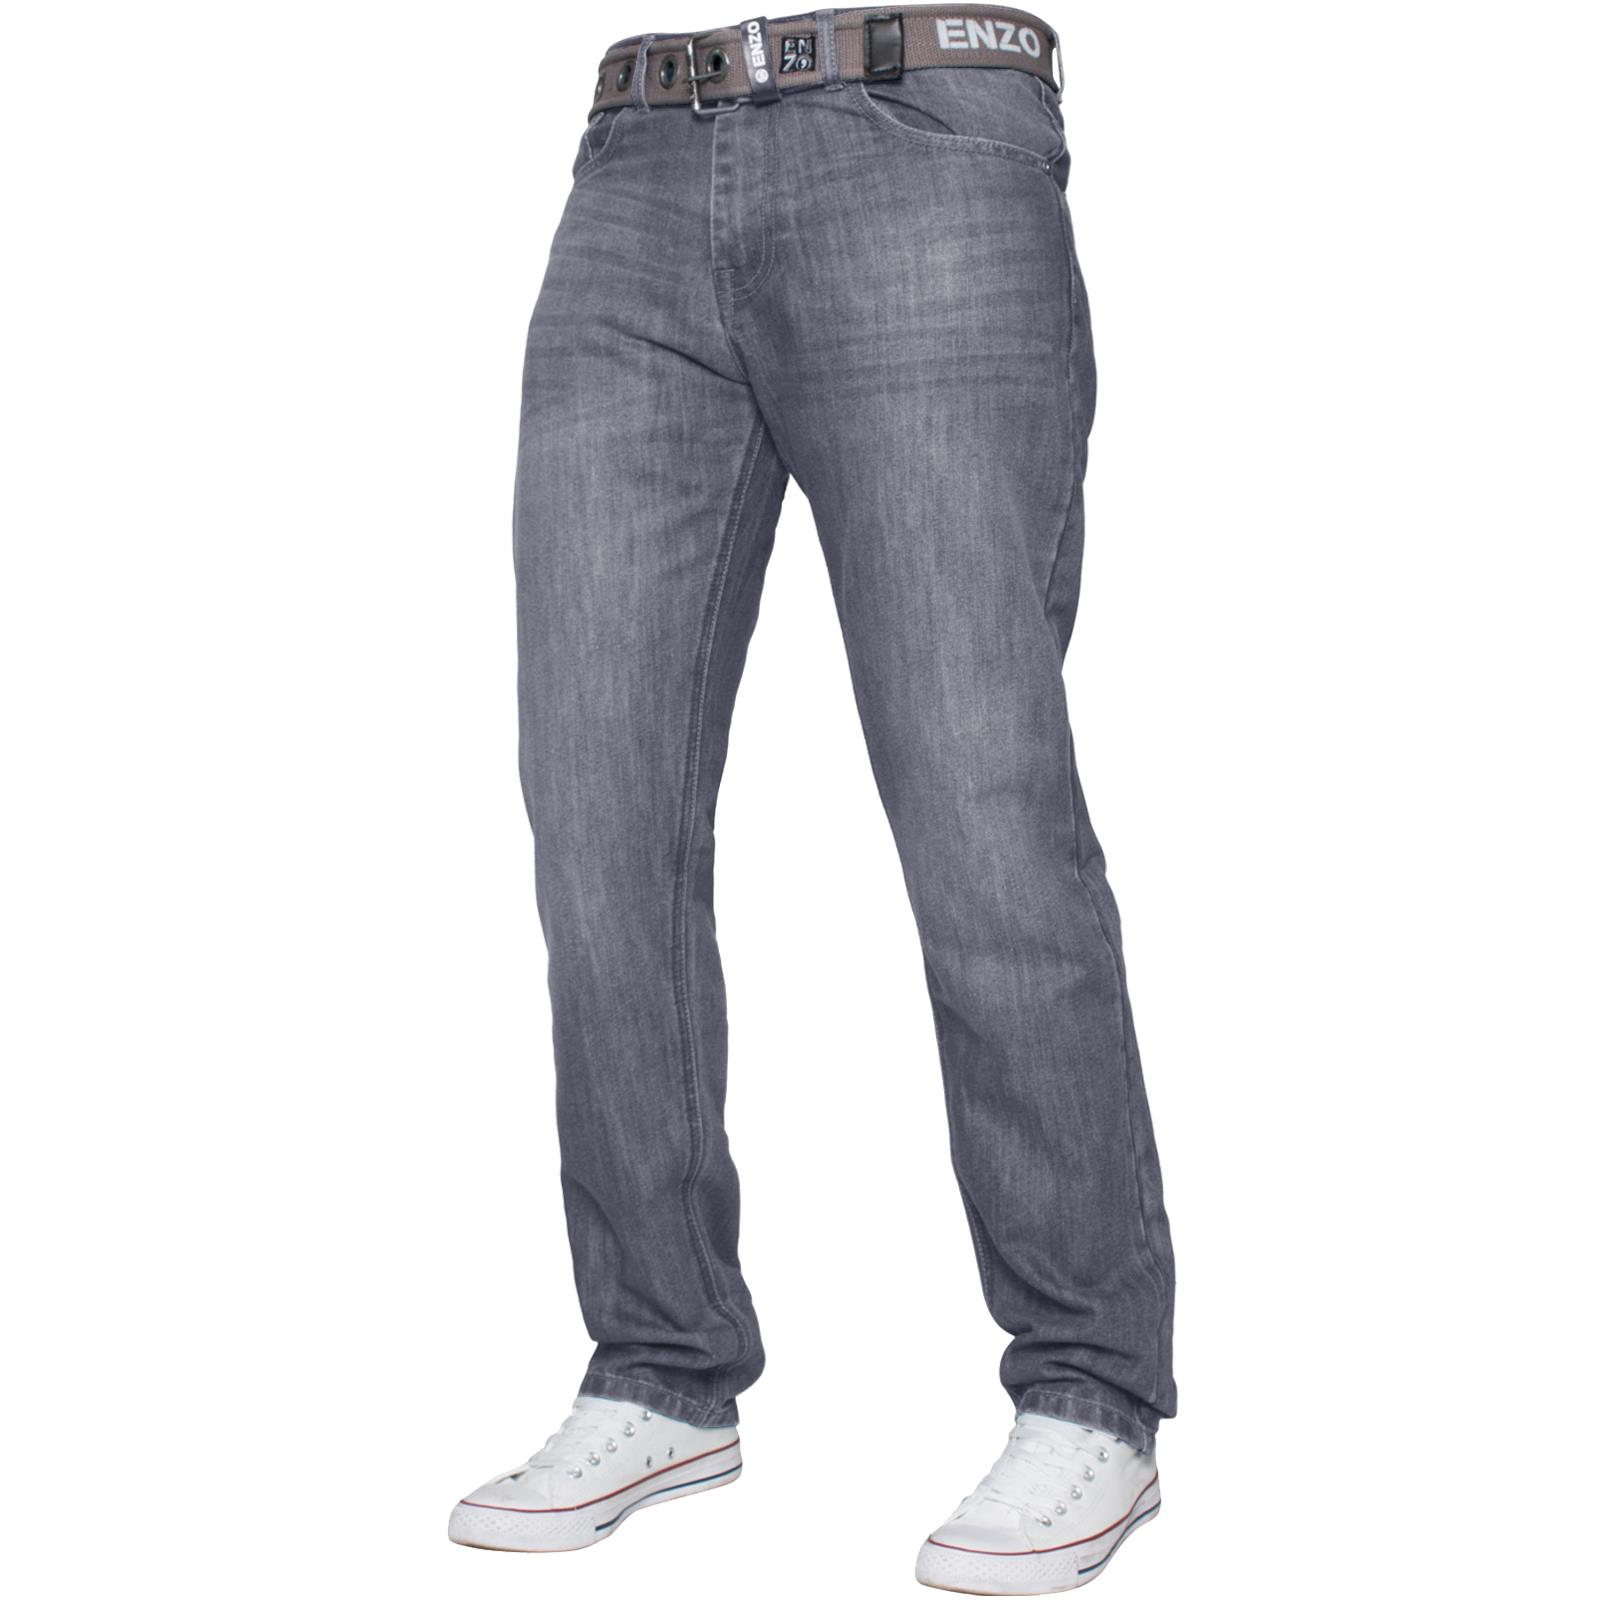 Enzo-Mens-Straight-Leg-Jeans-Regular-Fit-Denim-Pants-Big-Tall-All-Waists-Sizes thumbnail 12